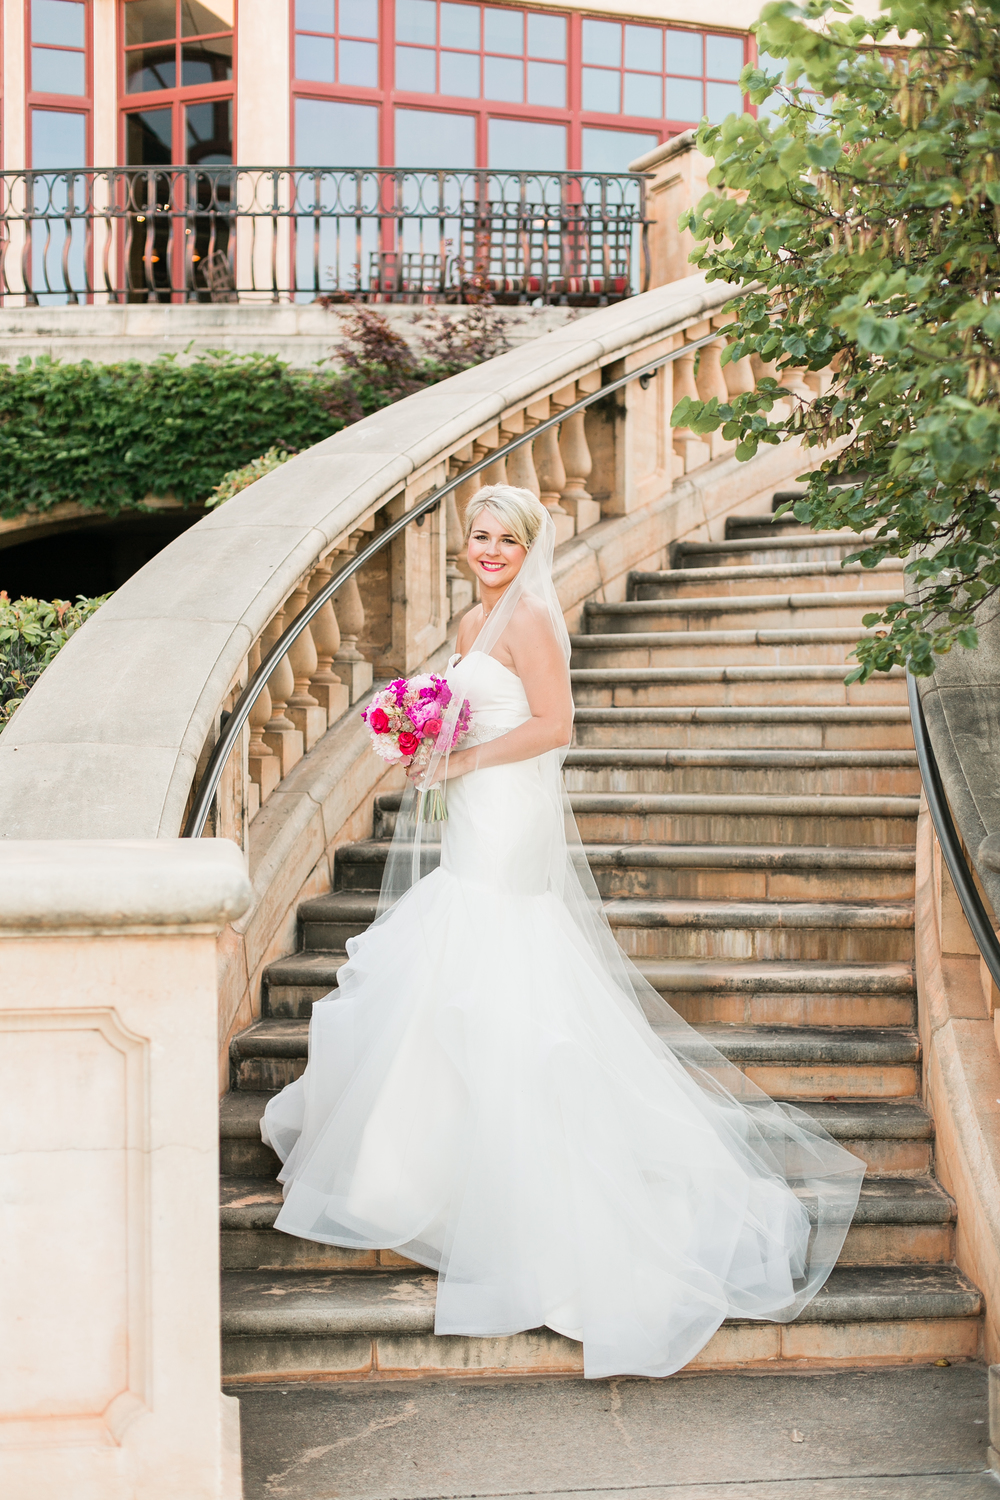 Bliss OKC | Aubrey Marie Photography | Tony Foss Flowers | Gaillardia Country Club | Bridal Portrait